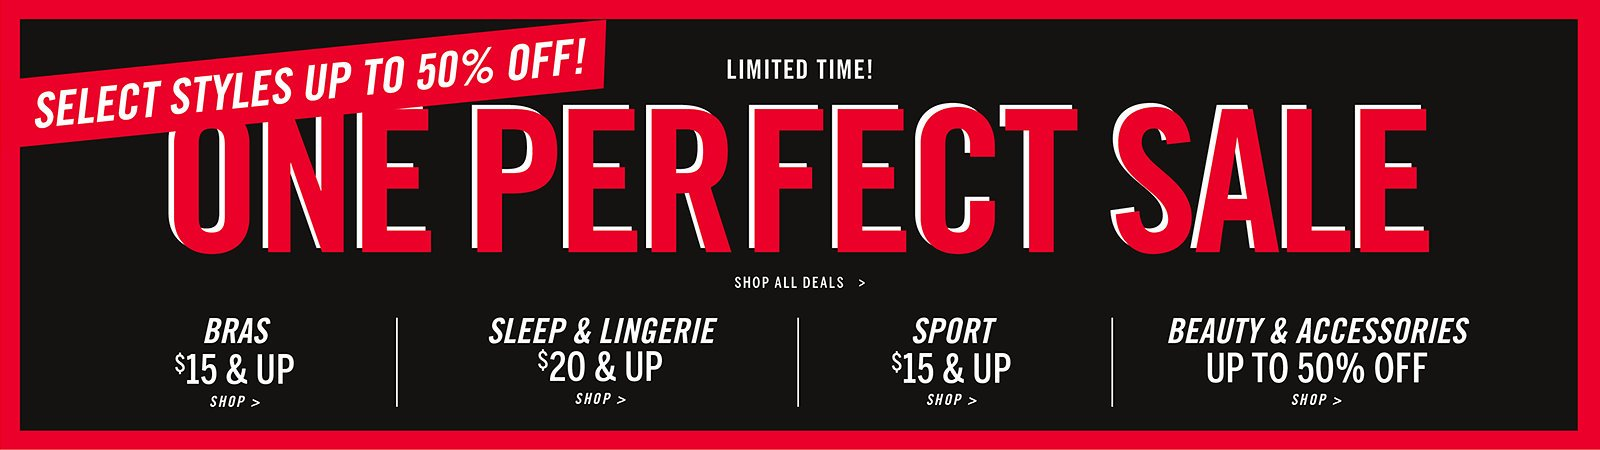 87959e61fa Select styles up to 50% off One Perfect Sale. Bras  15 and up. Shop.Limited  Time! Select styles up to 50% off One Perfect Sale. Sleep and lingerie  20  and ...